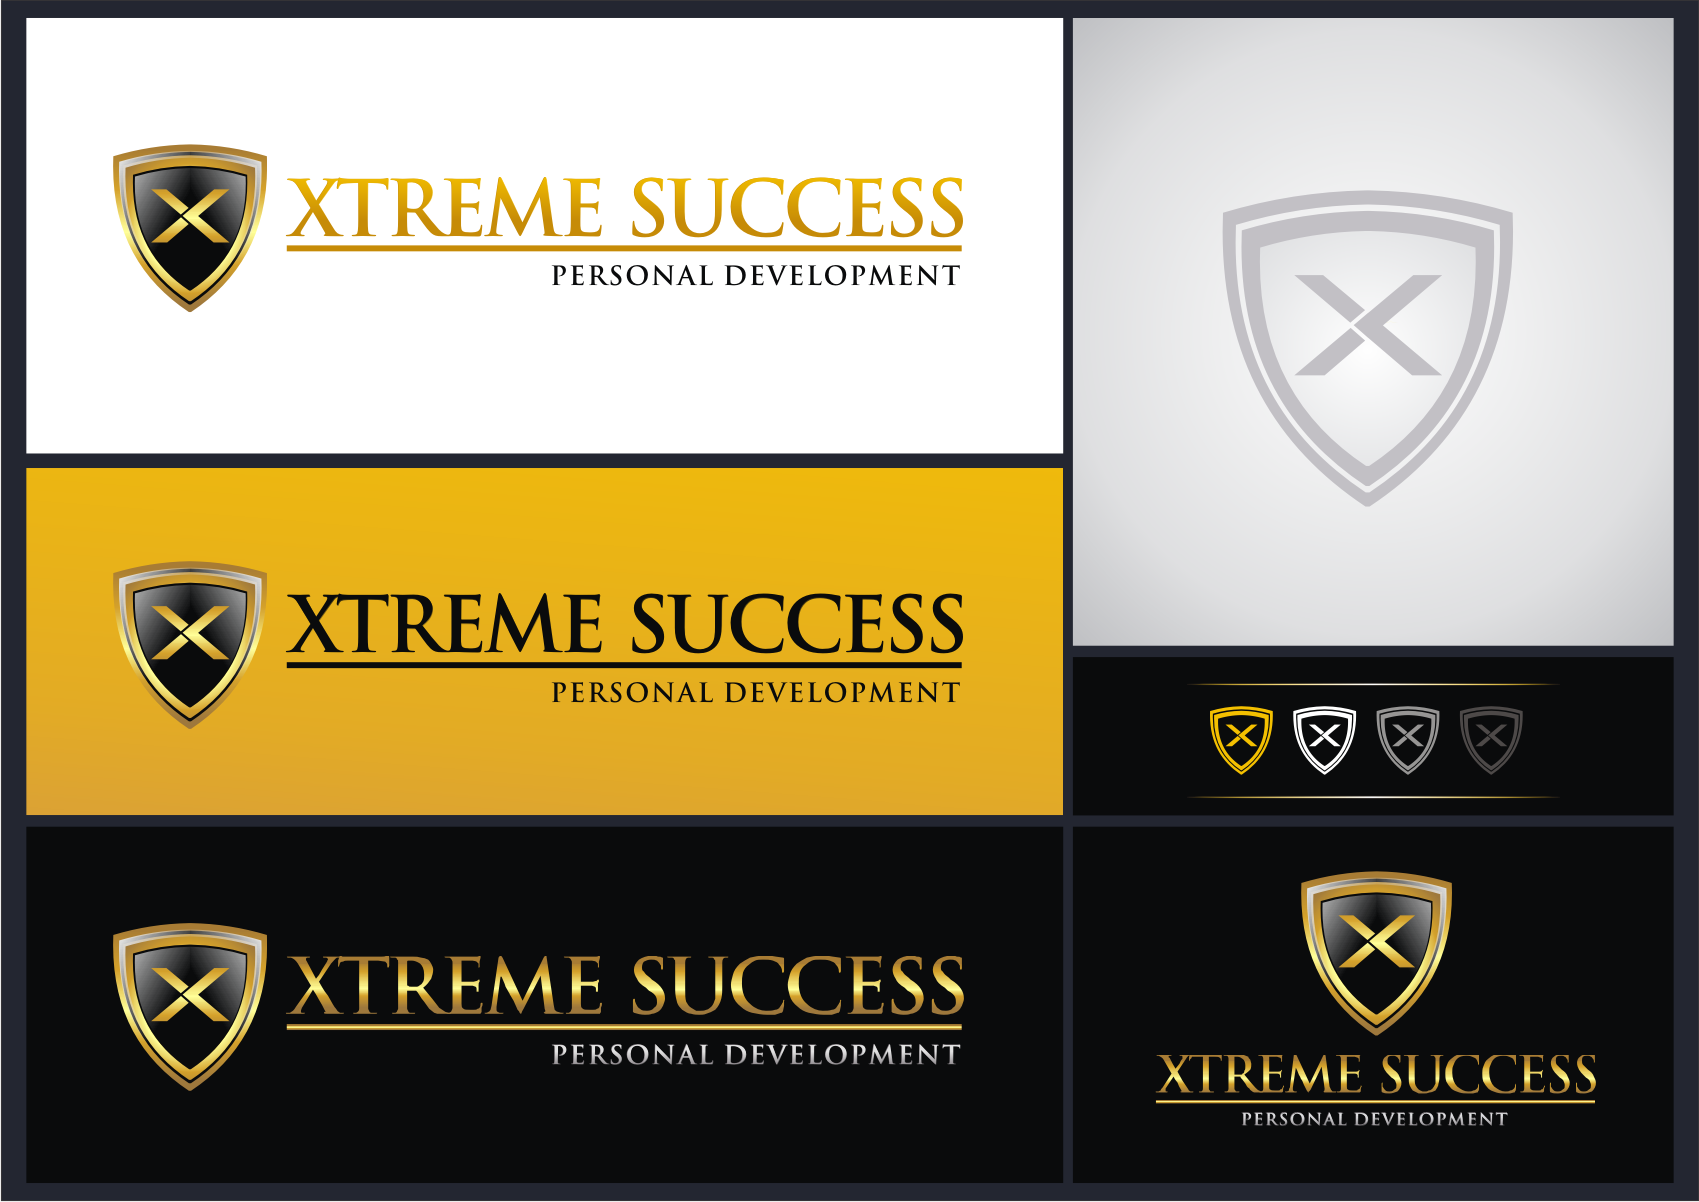 Create the next logo for Xtreme Success